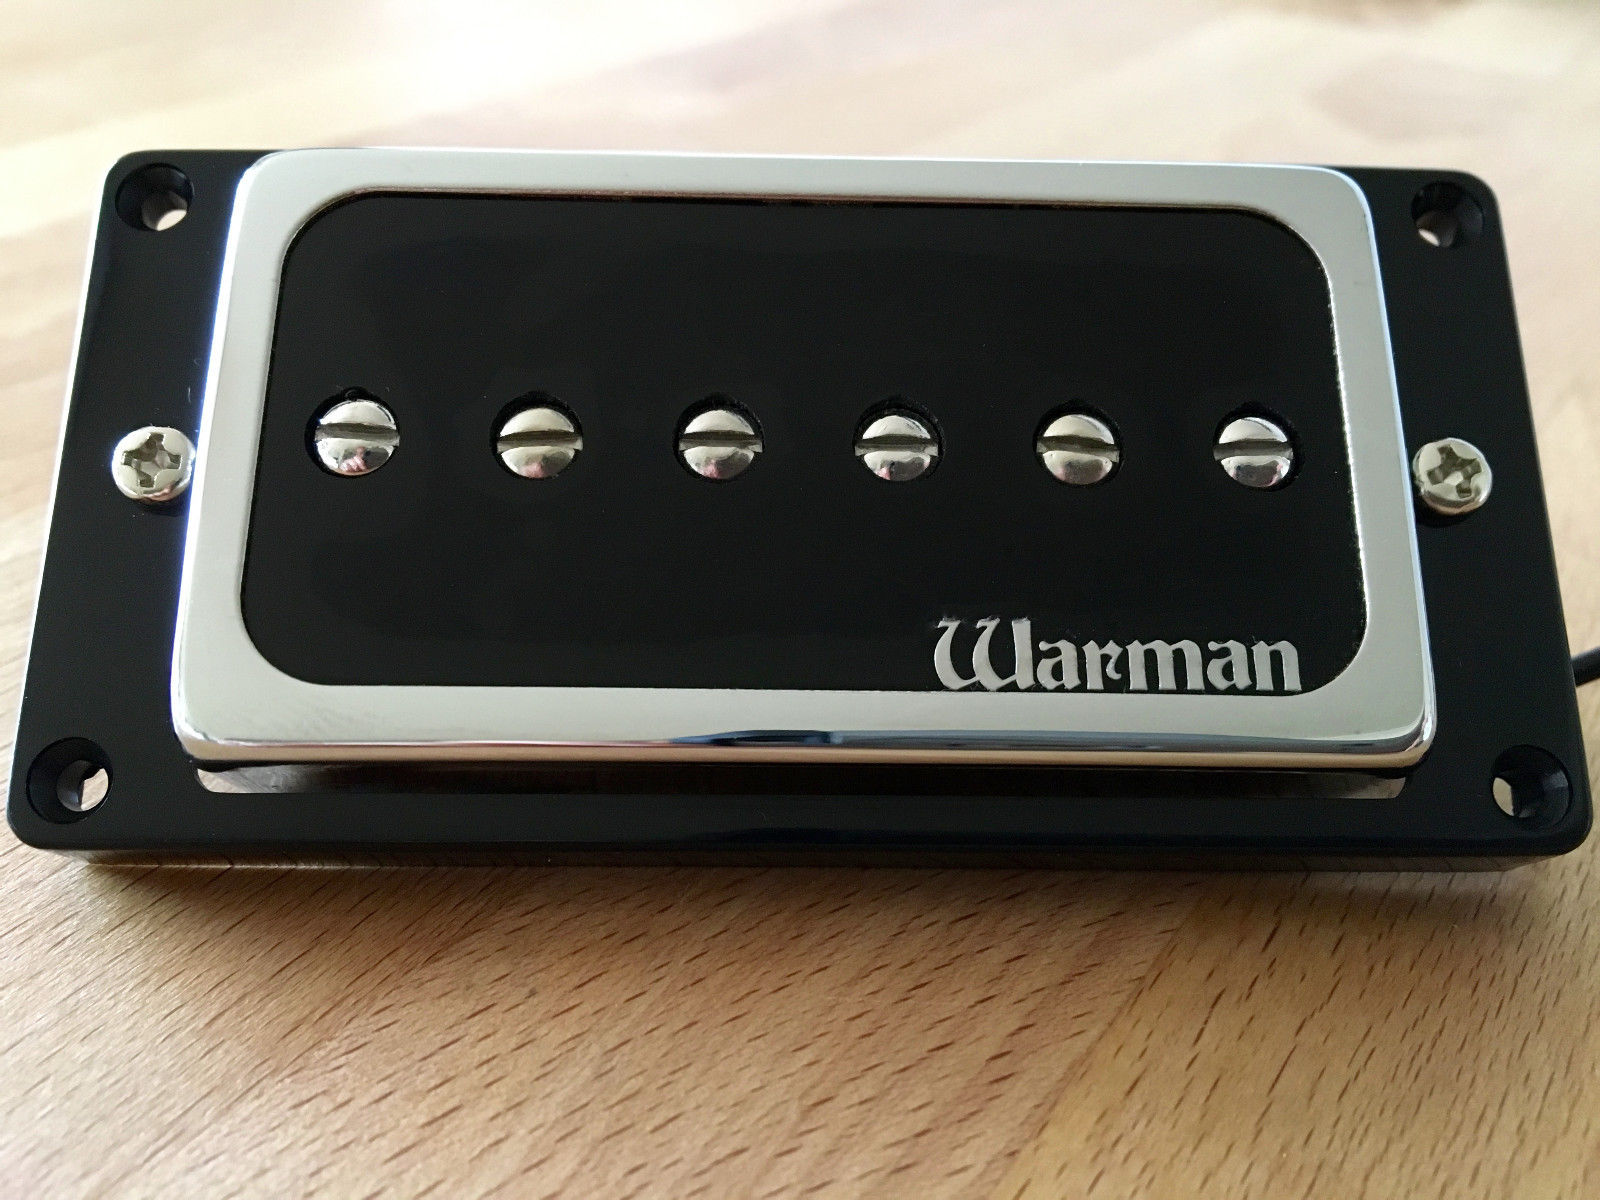 Hbp90 Neck Position Only P90 Voiced Humbucker Sized Retrofit Warman Pickup Wiring Diagram Pickups